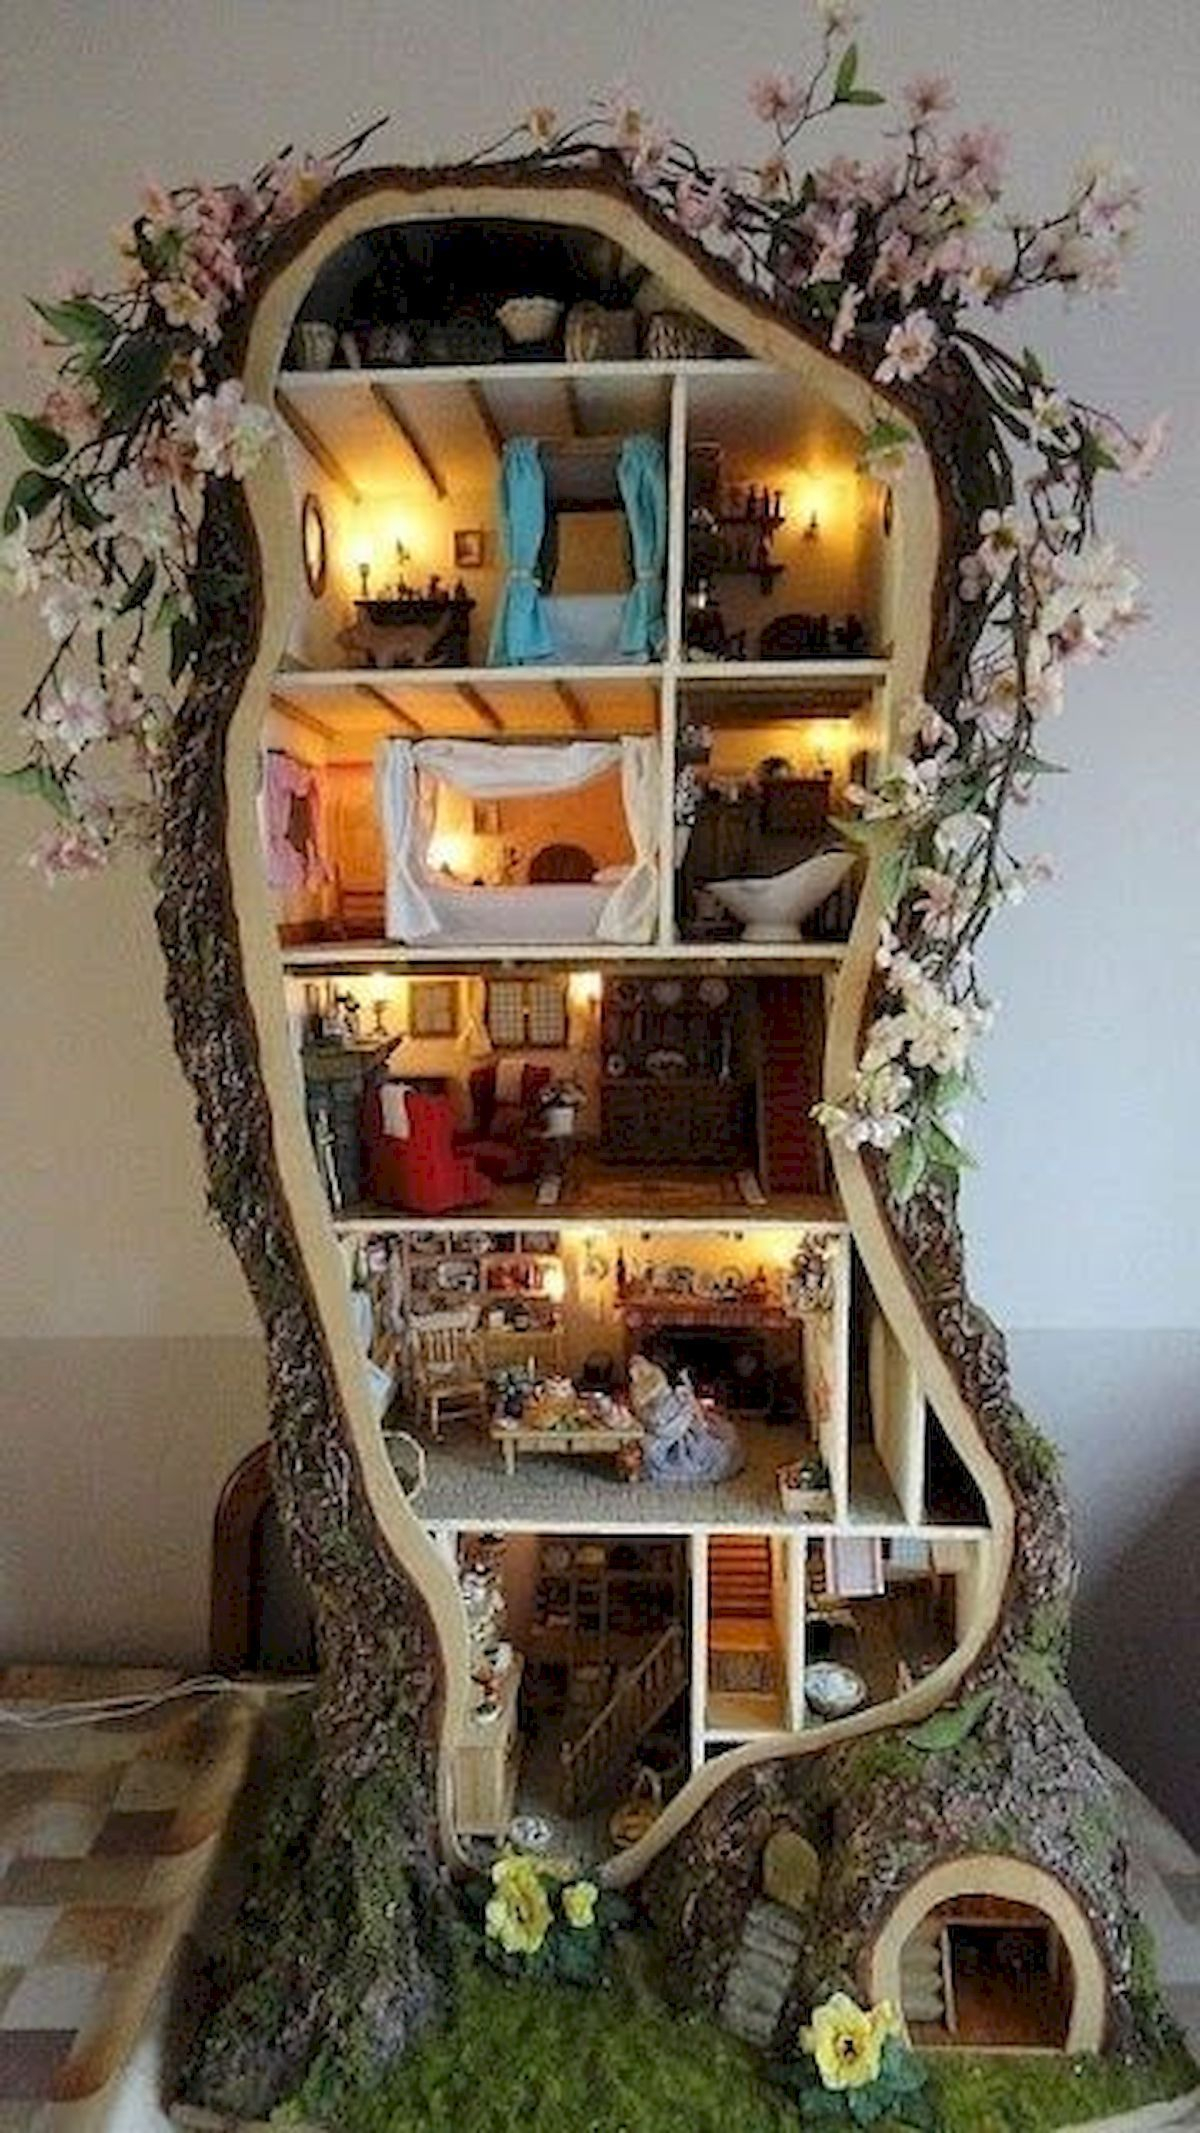 Mouse tree house Amusing DIY Dollhouse Projects Where Your Children Can Enjoy With Cherished Forever